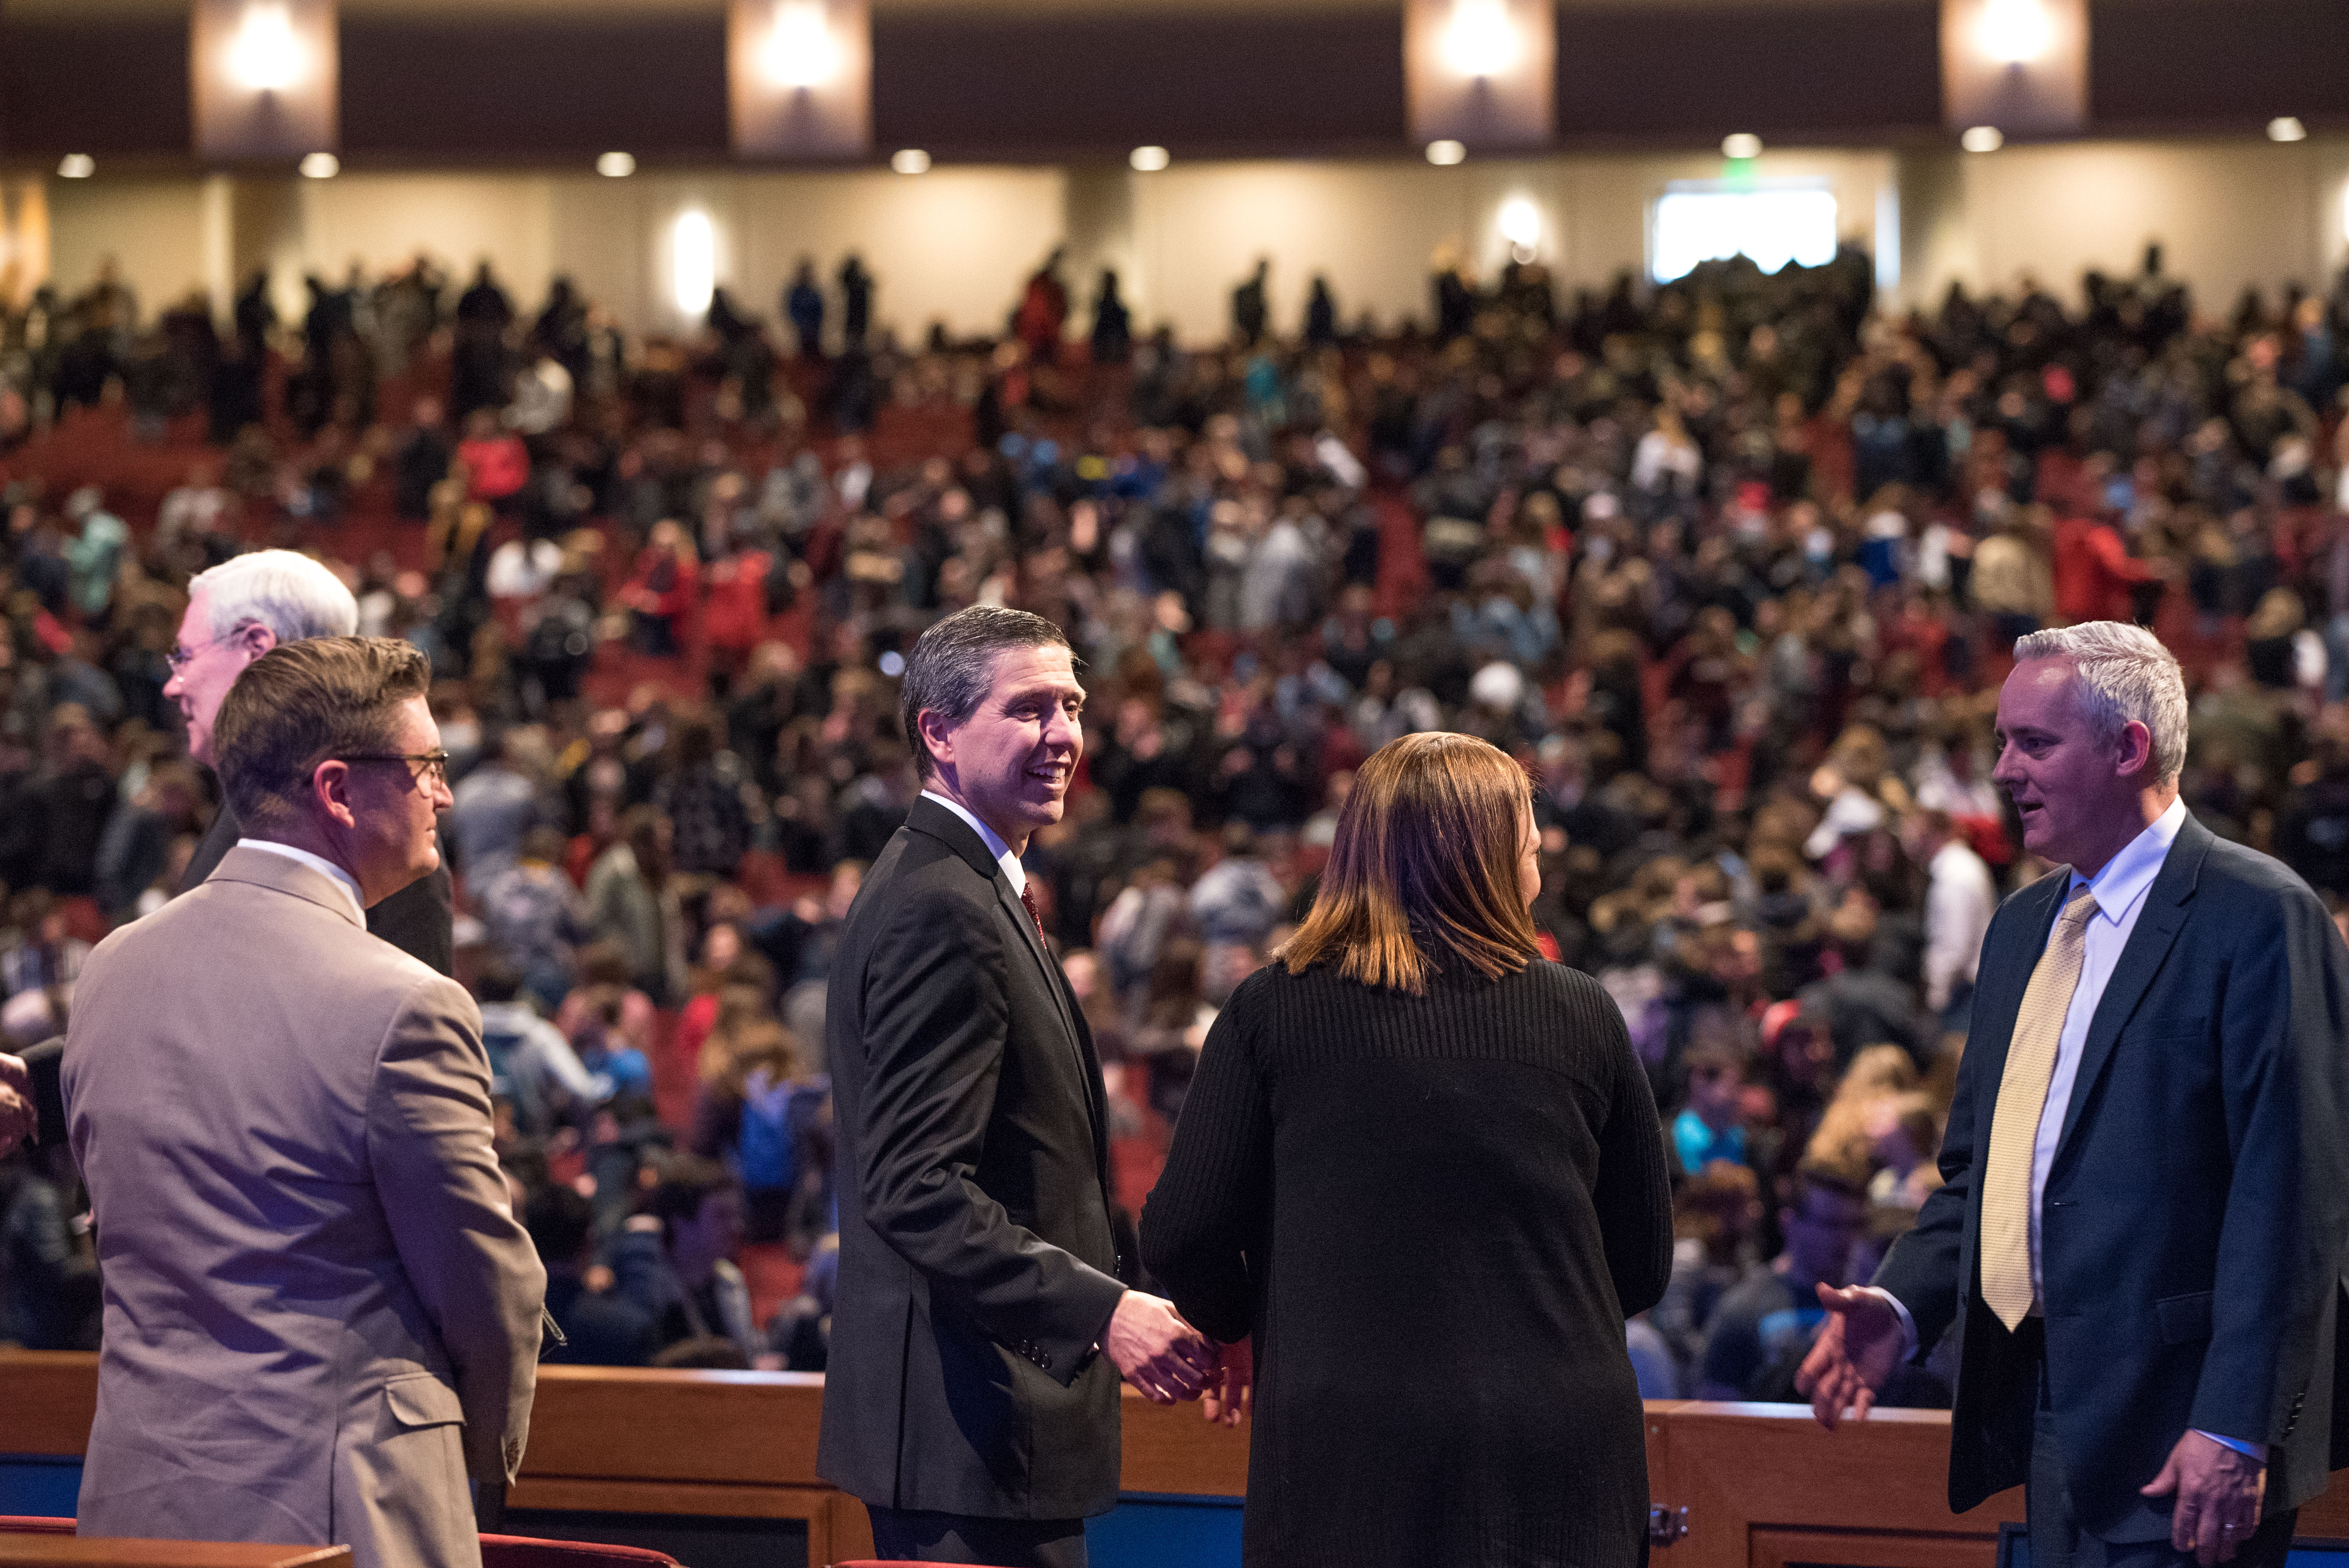 Elder Joaquin E. Costa, a General Authority Seventy, and his wife, Sister Renee Costa (center), following their devotional at BYU–Idaho on Feb. 26.